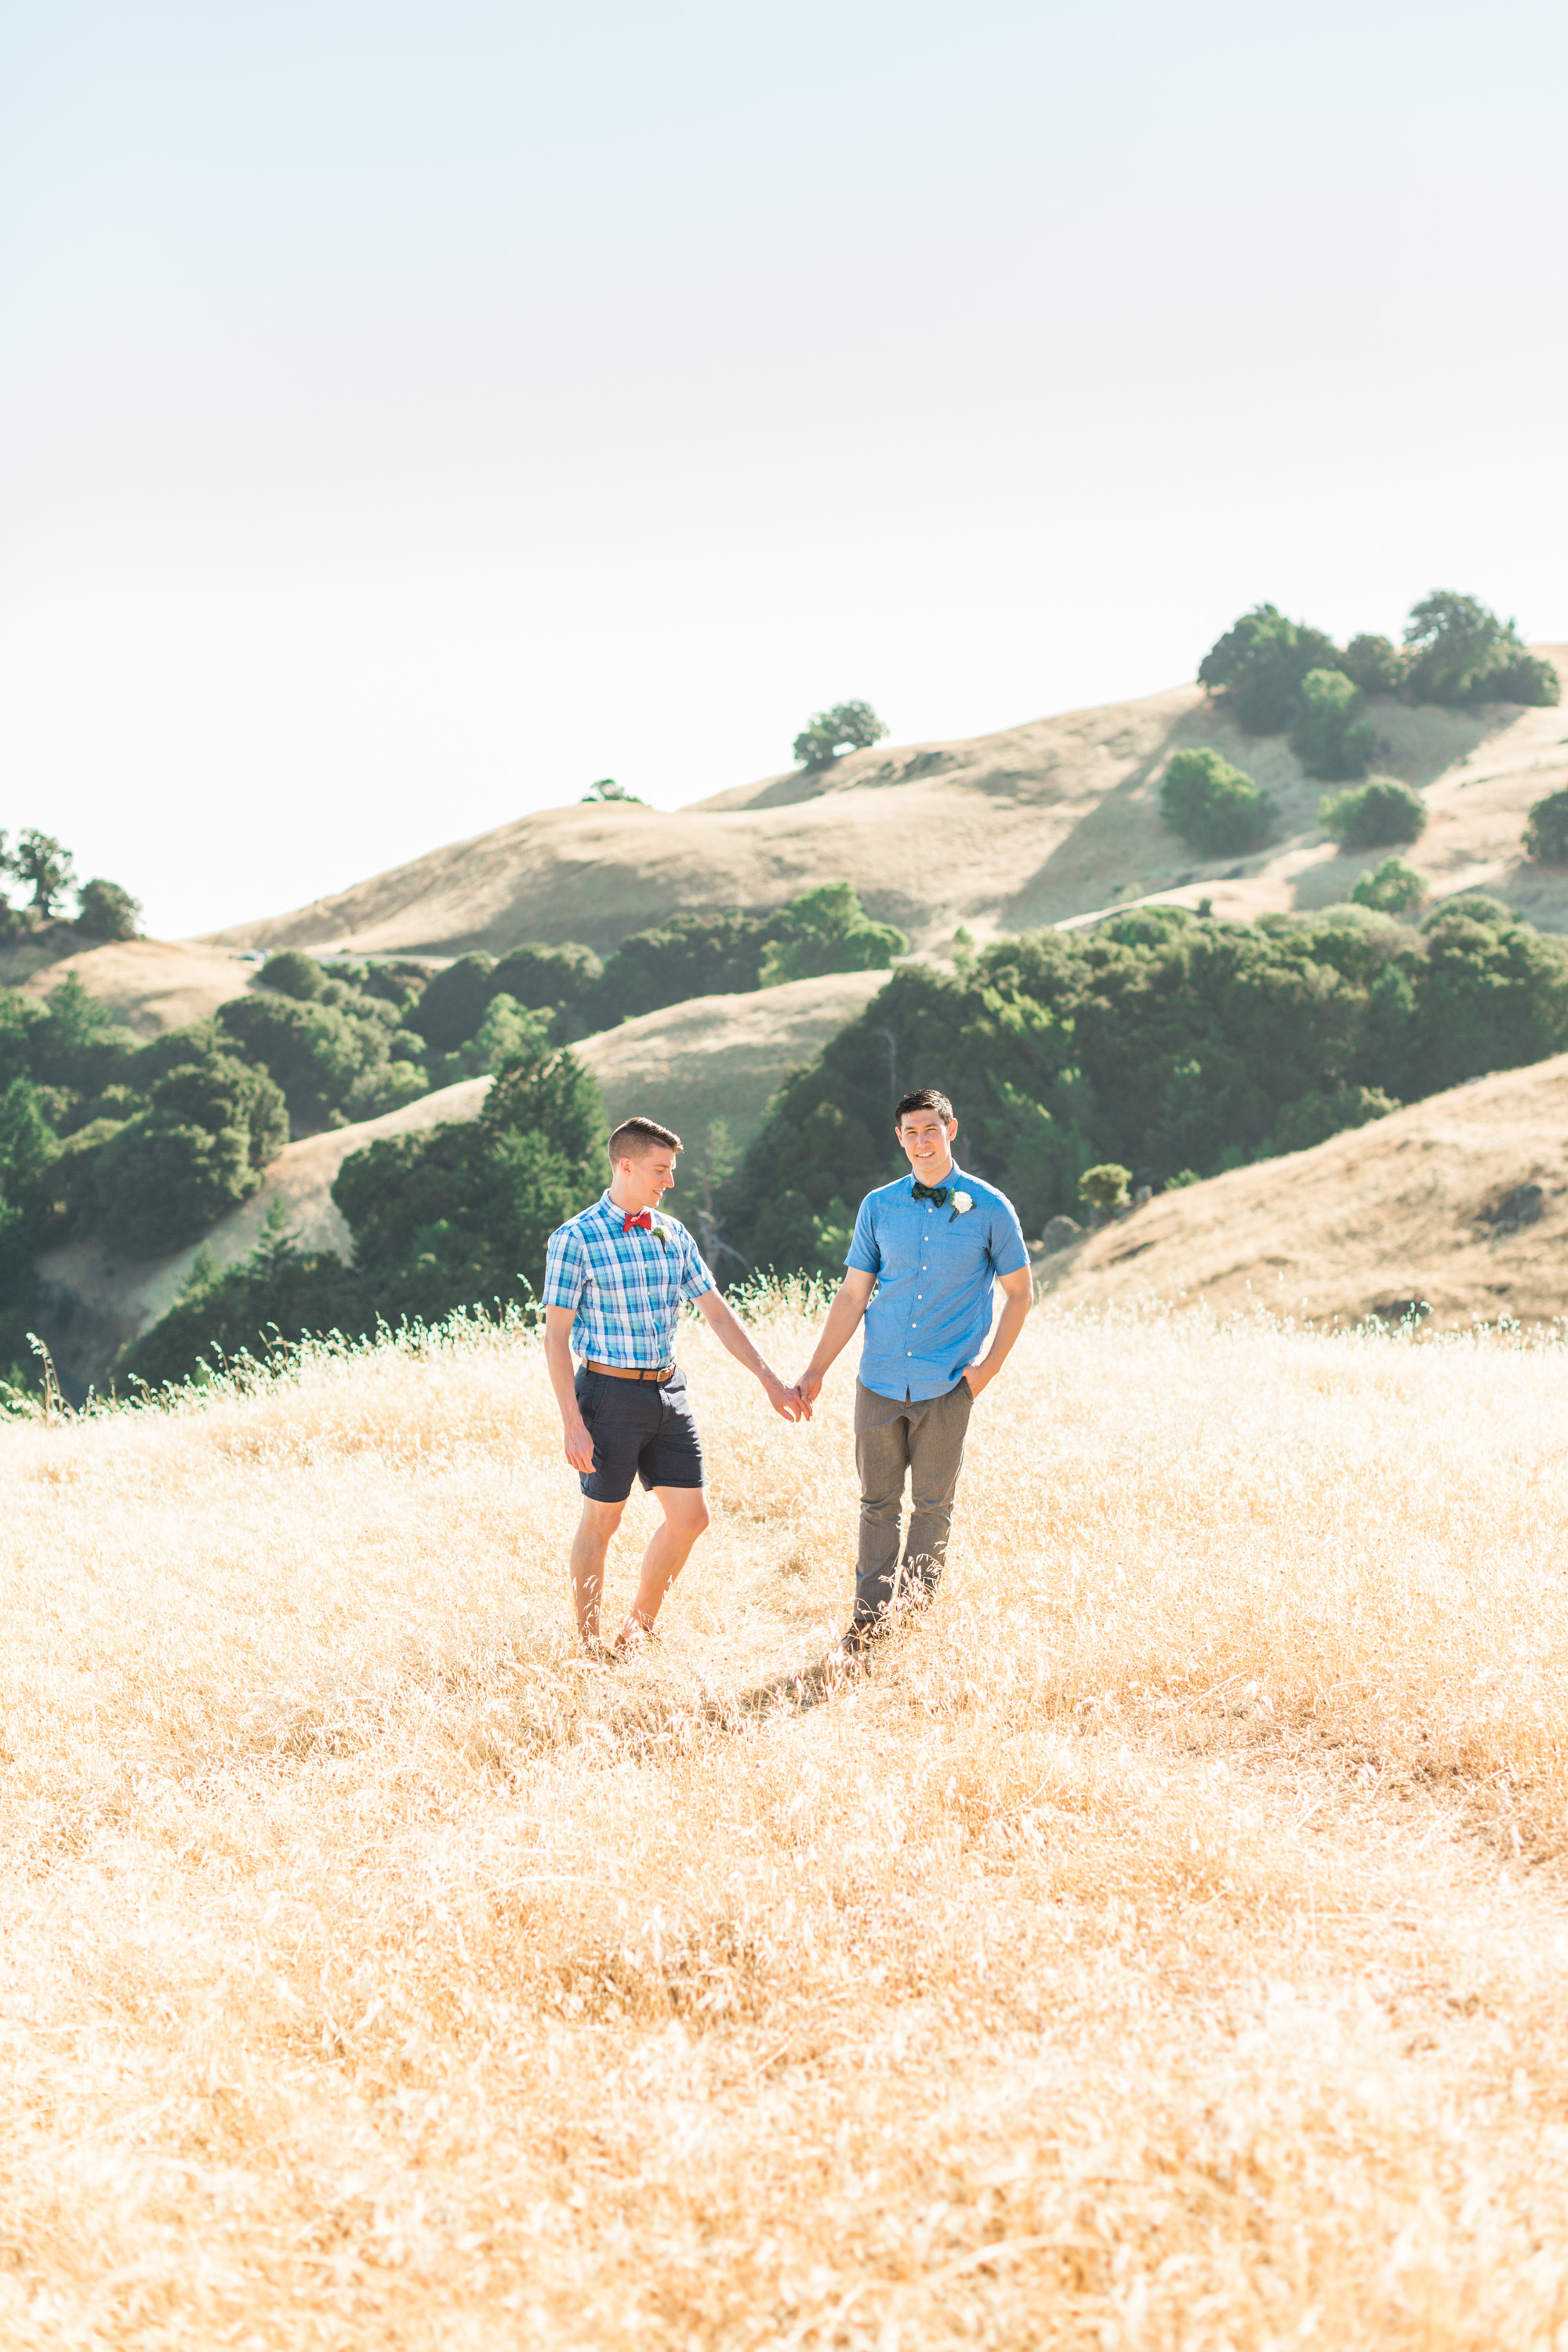 Two grooms in the rolling golden hills of Mount Tamalpais on their wedding day. Bay area wedding photographers Betsy & John